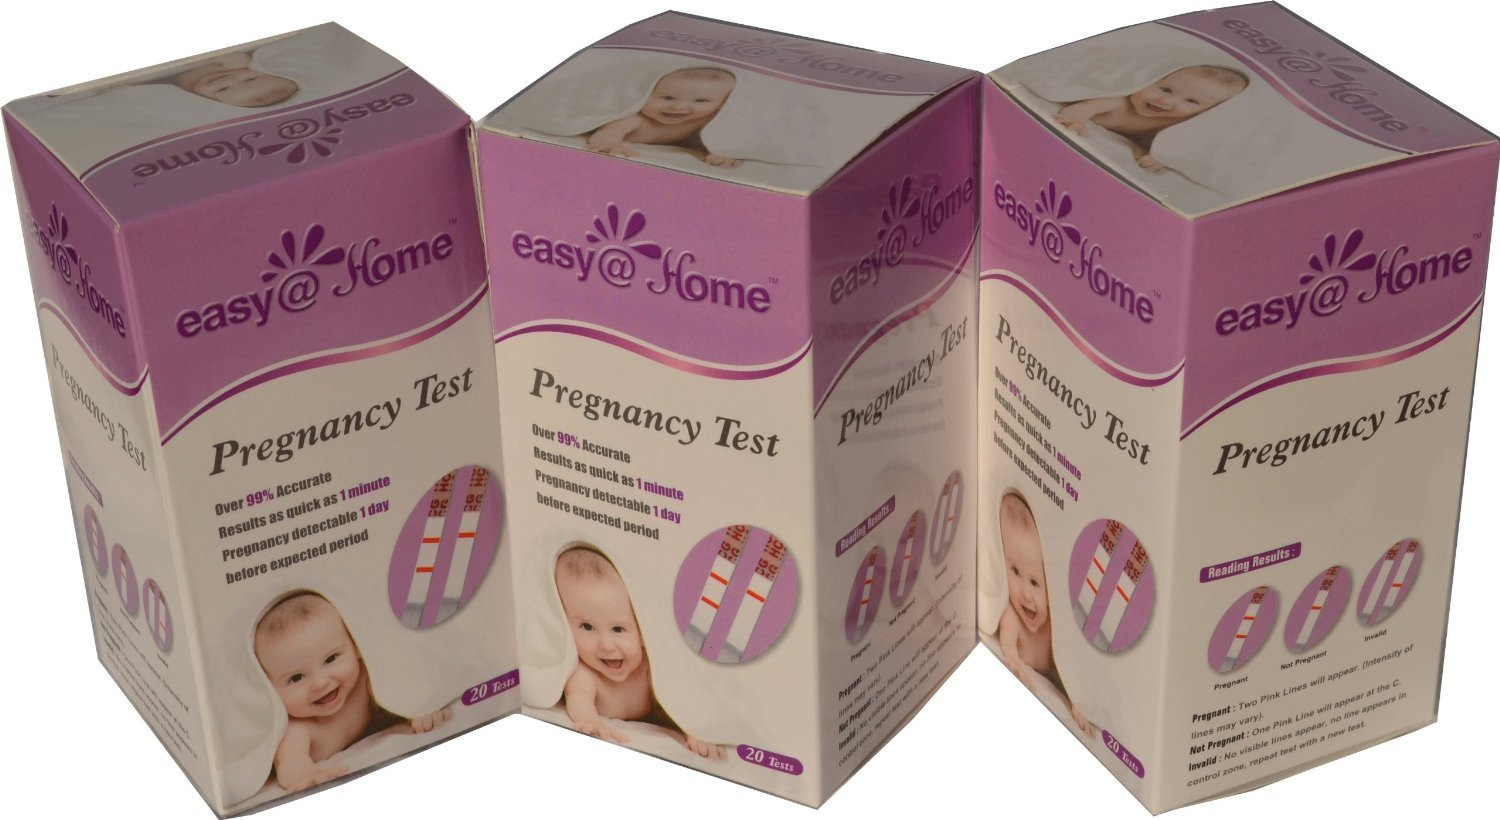 1000 Easy@Home Home HCG Pregnancy Test Strips by Easy@Home (Image #5)